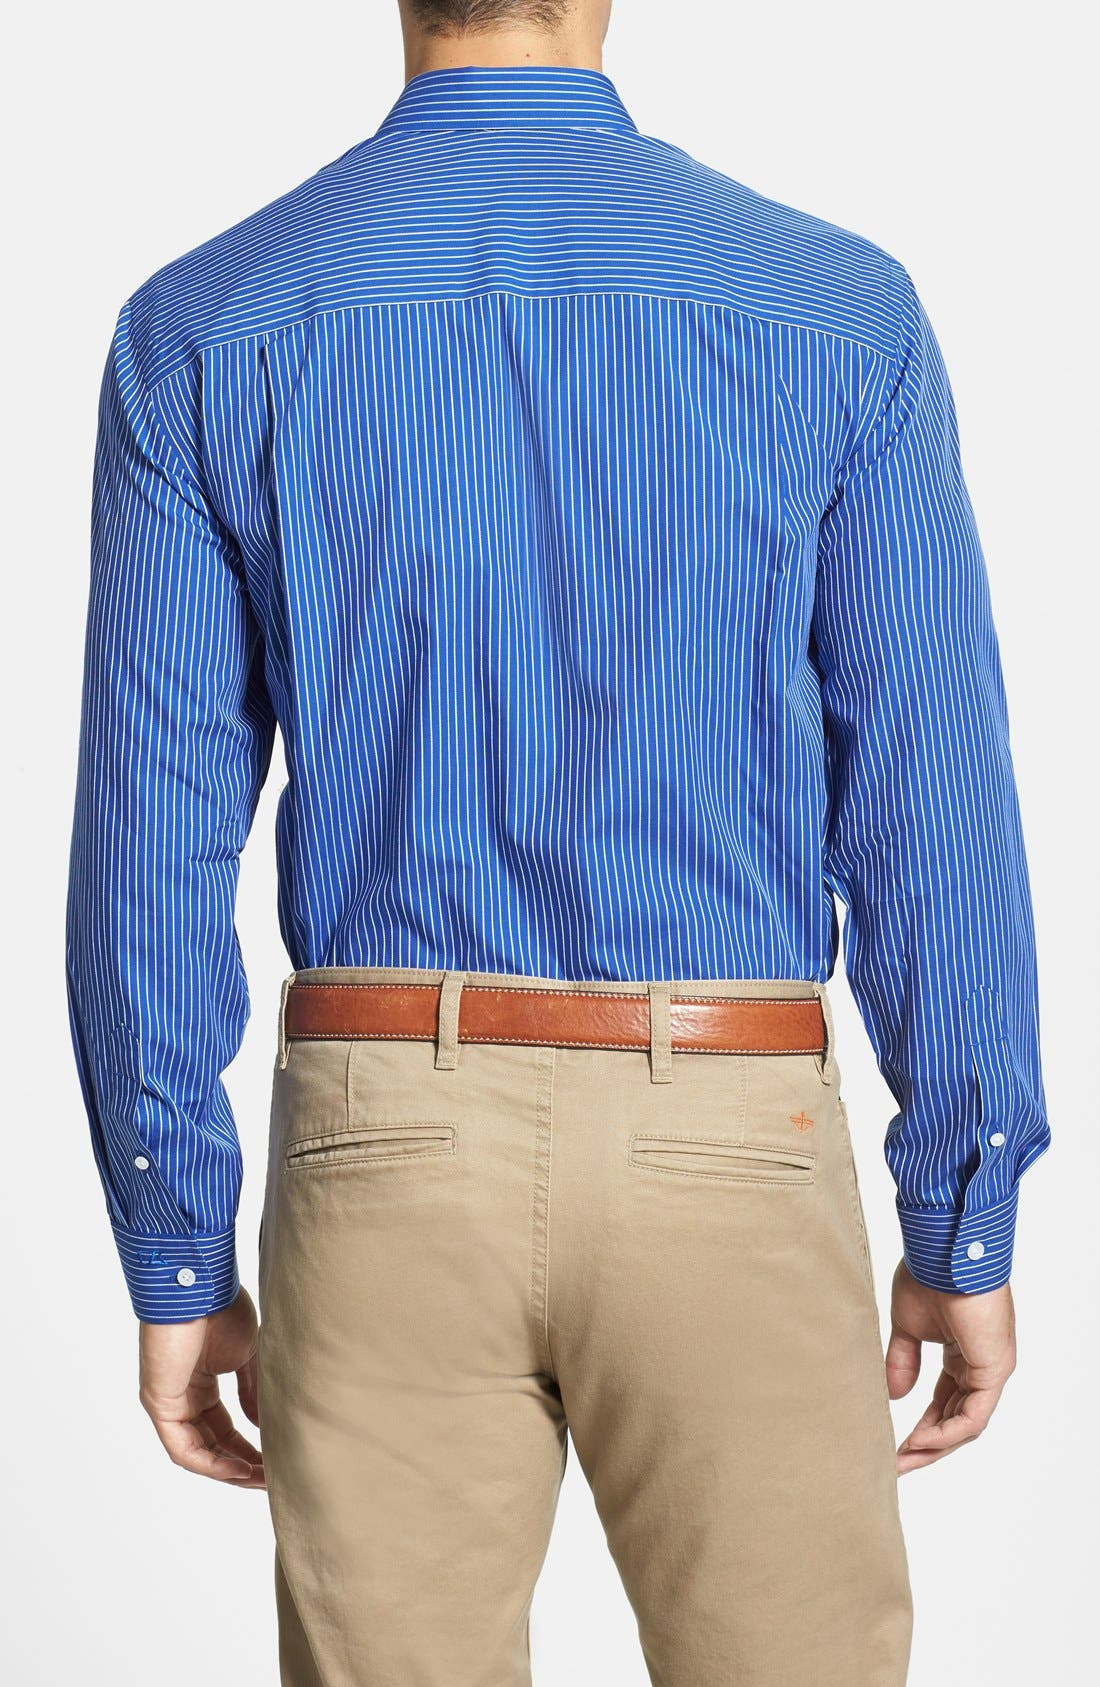 'Epic Easy Care' Classic Fit Vertical Pinstripe Wrinkle Resistant Sport Shirt,                             Alternate thumbnail 6, color,                             460